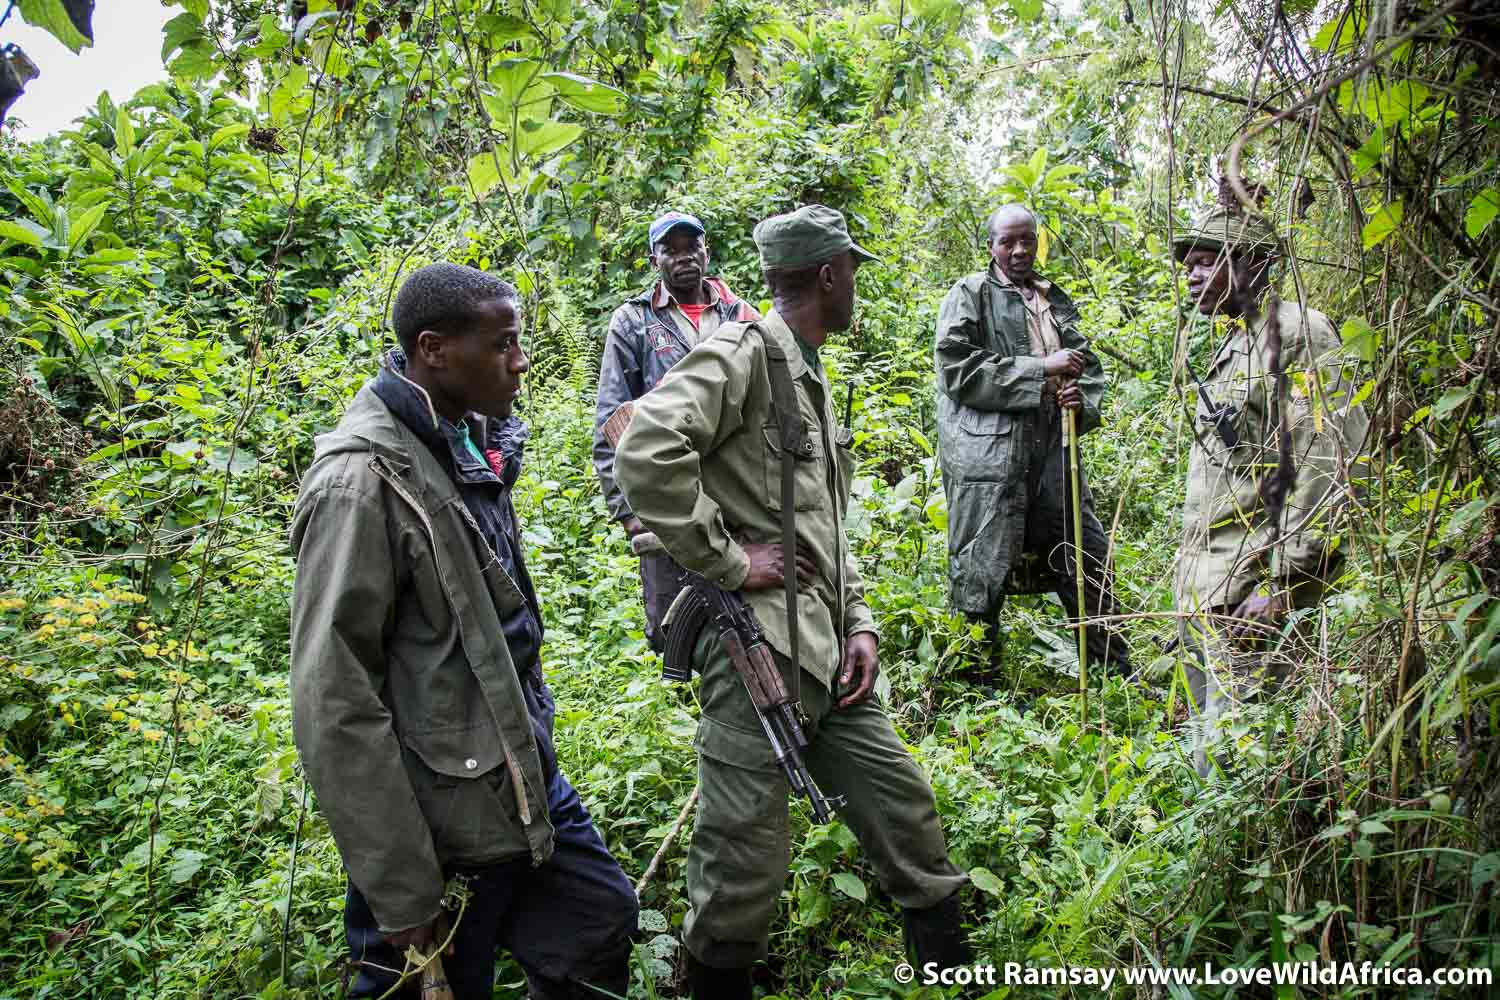 After about two hours of trekking on the slopes of Mount Mikeno, guided by two armed rangers, met up with the trackers who had earlier gone out to locate the gorilla family.